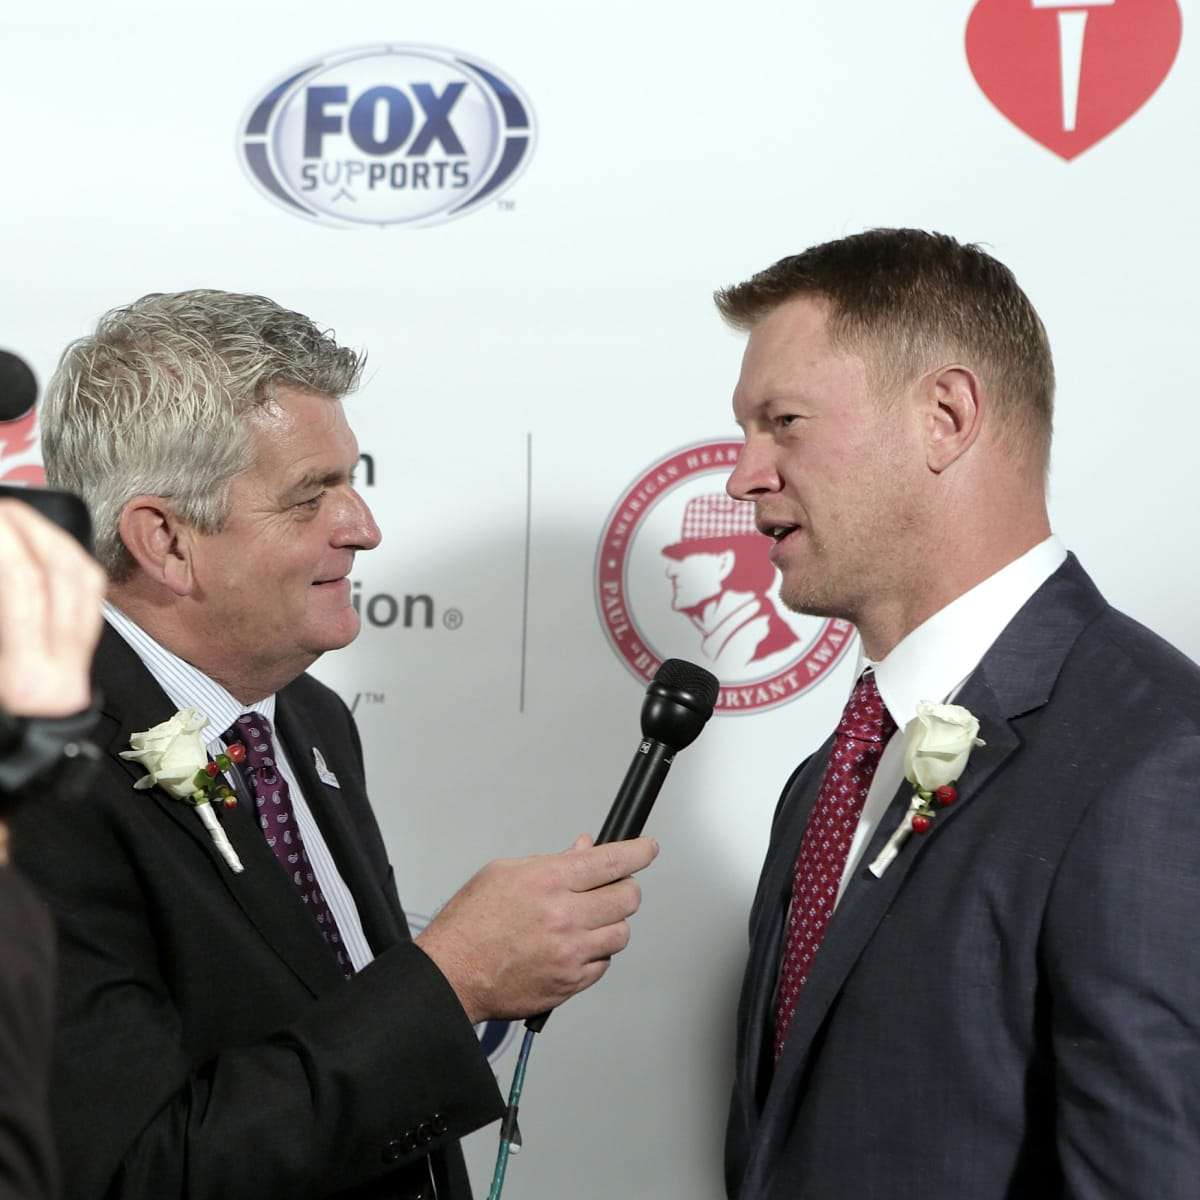 Houston, Bear Bryant Awards, January 2018, John Rhadigan, Scott Frost